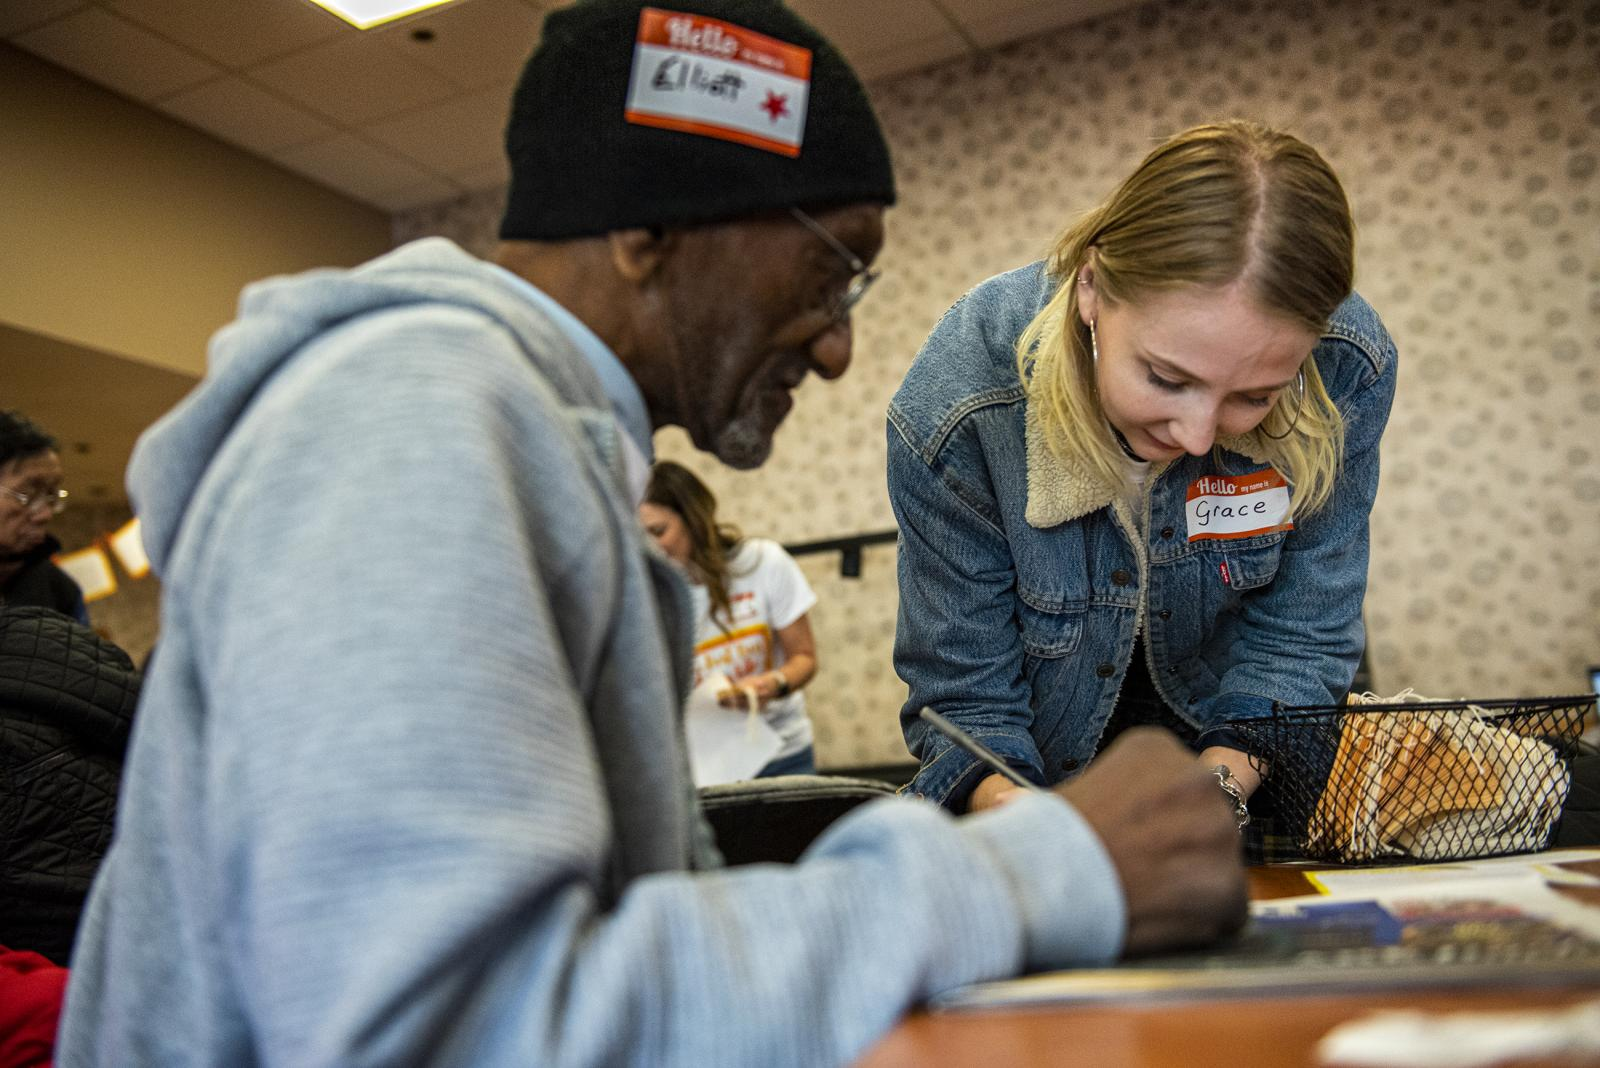 Grace Pfeifer, 21, a volunteer from the College of New Jersey, helps Elliott Doomes write his stories at the 10th anniversary of Best Day of My Life So Far, on Friday, Nov. 8, 2019, at Philadelphia Senior Center, in Philadelphia, Pa.